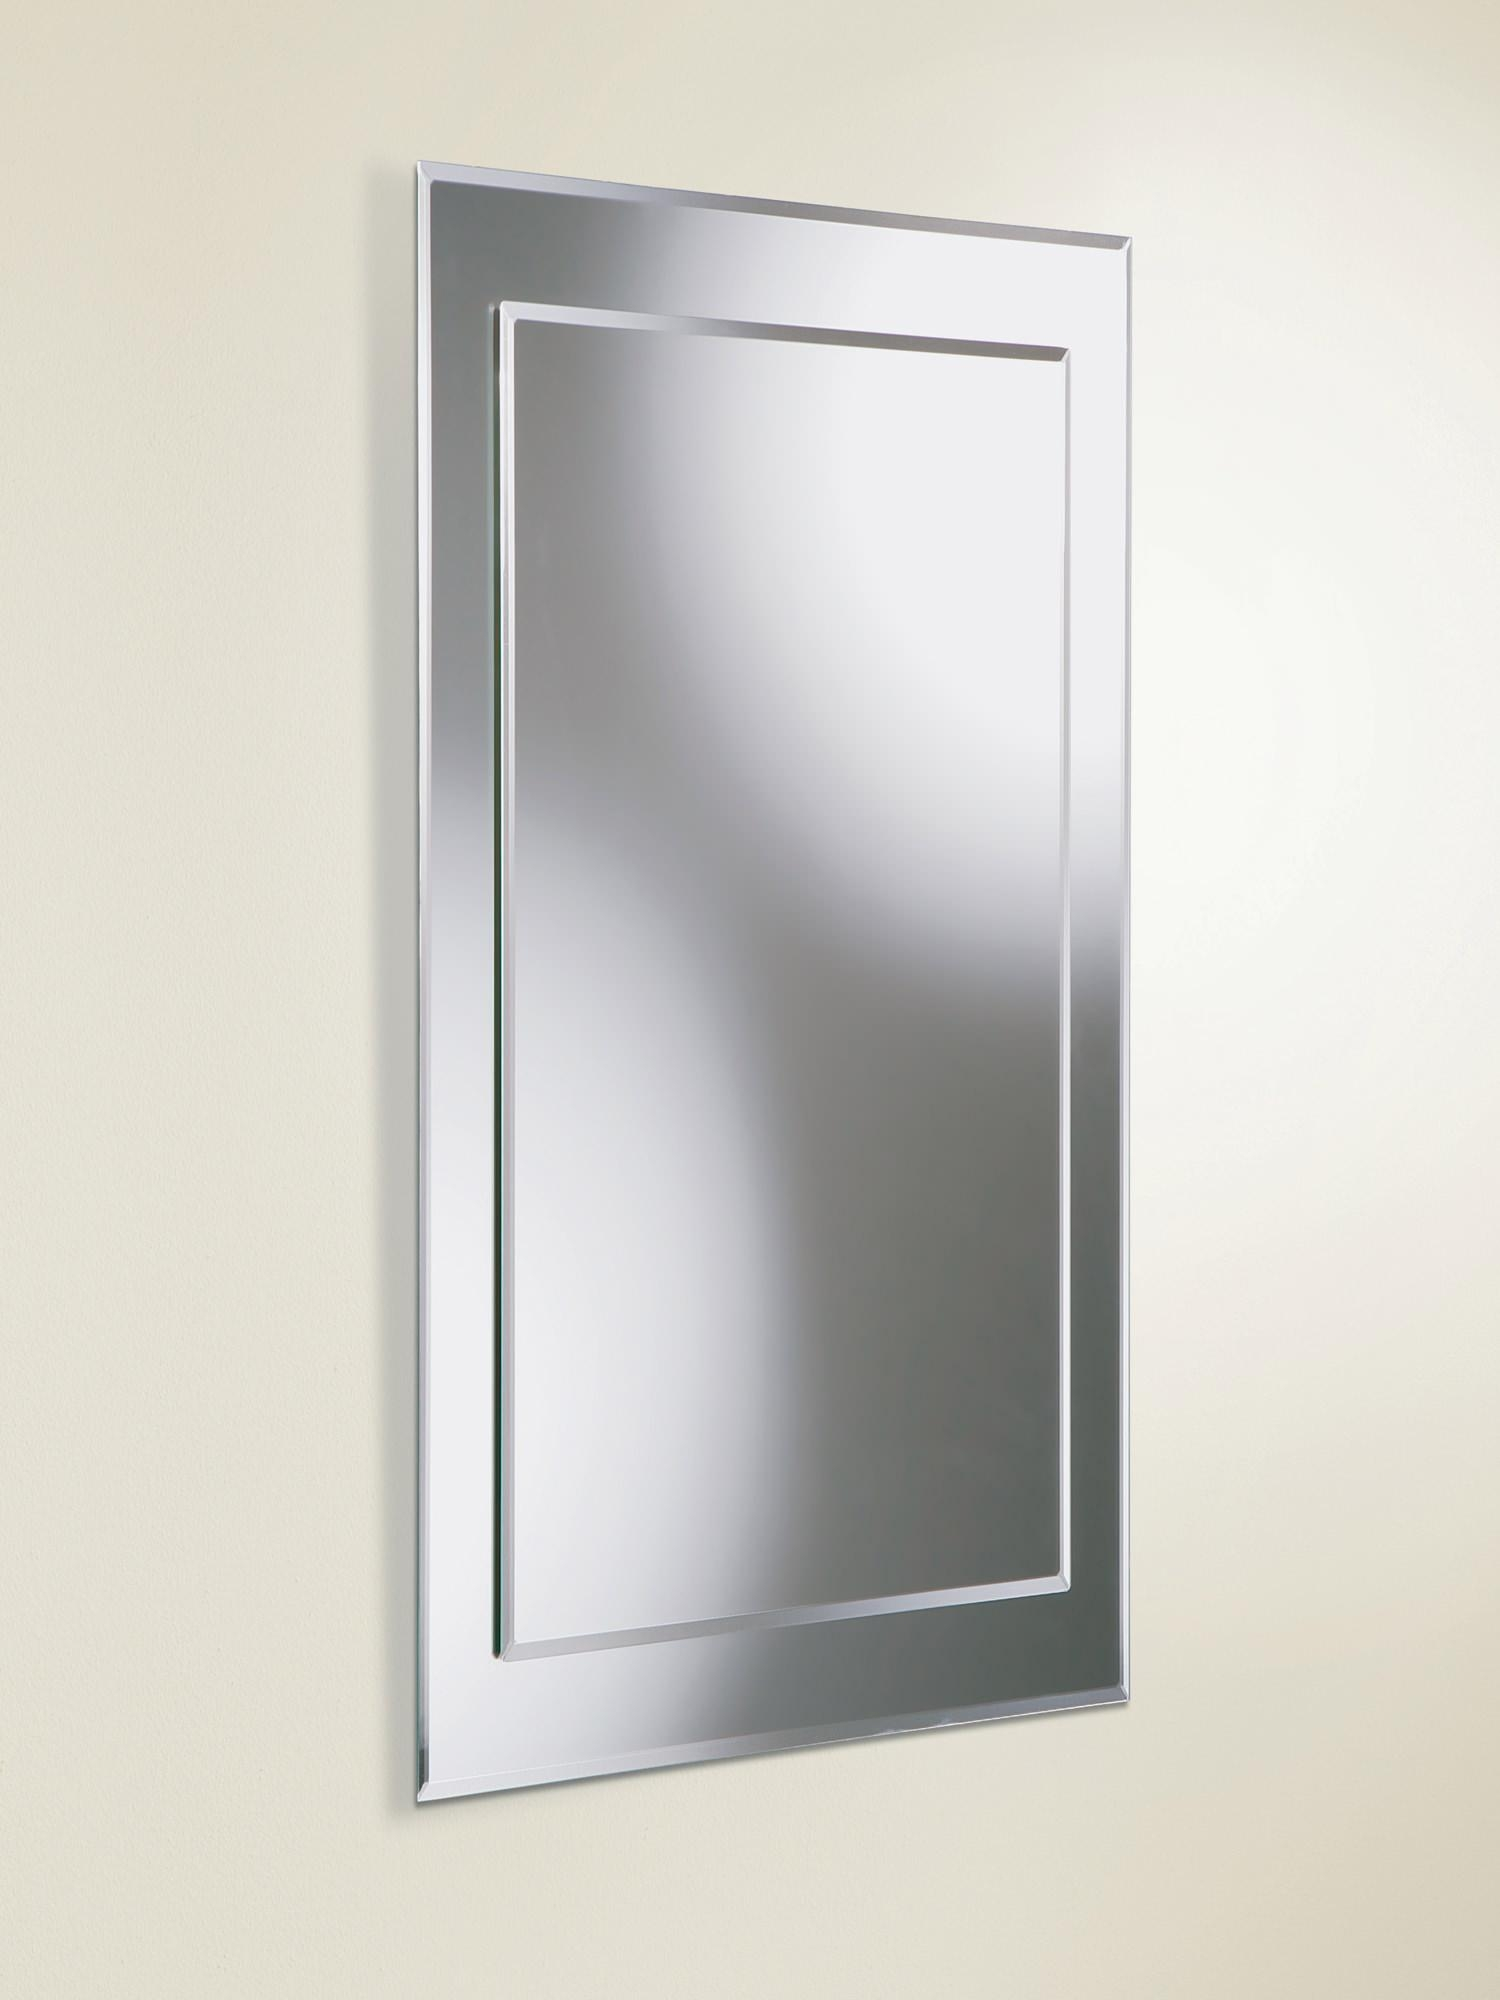 Hib Lucy Rectangular Bevelled Mirror On Mirror 400 X 800Mm | 63604295 Throughout Bevelled Mirror (View 12 of 20)